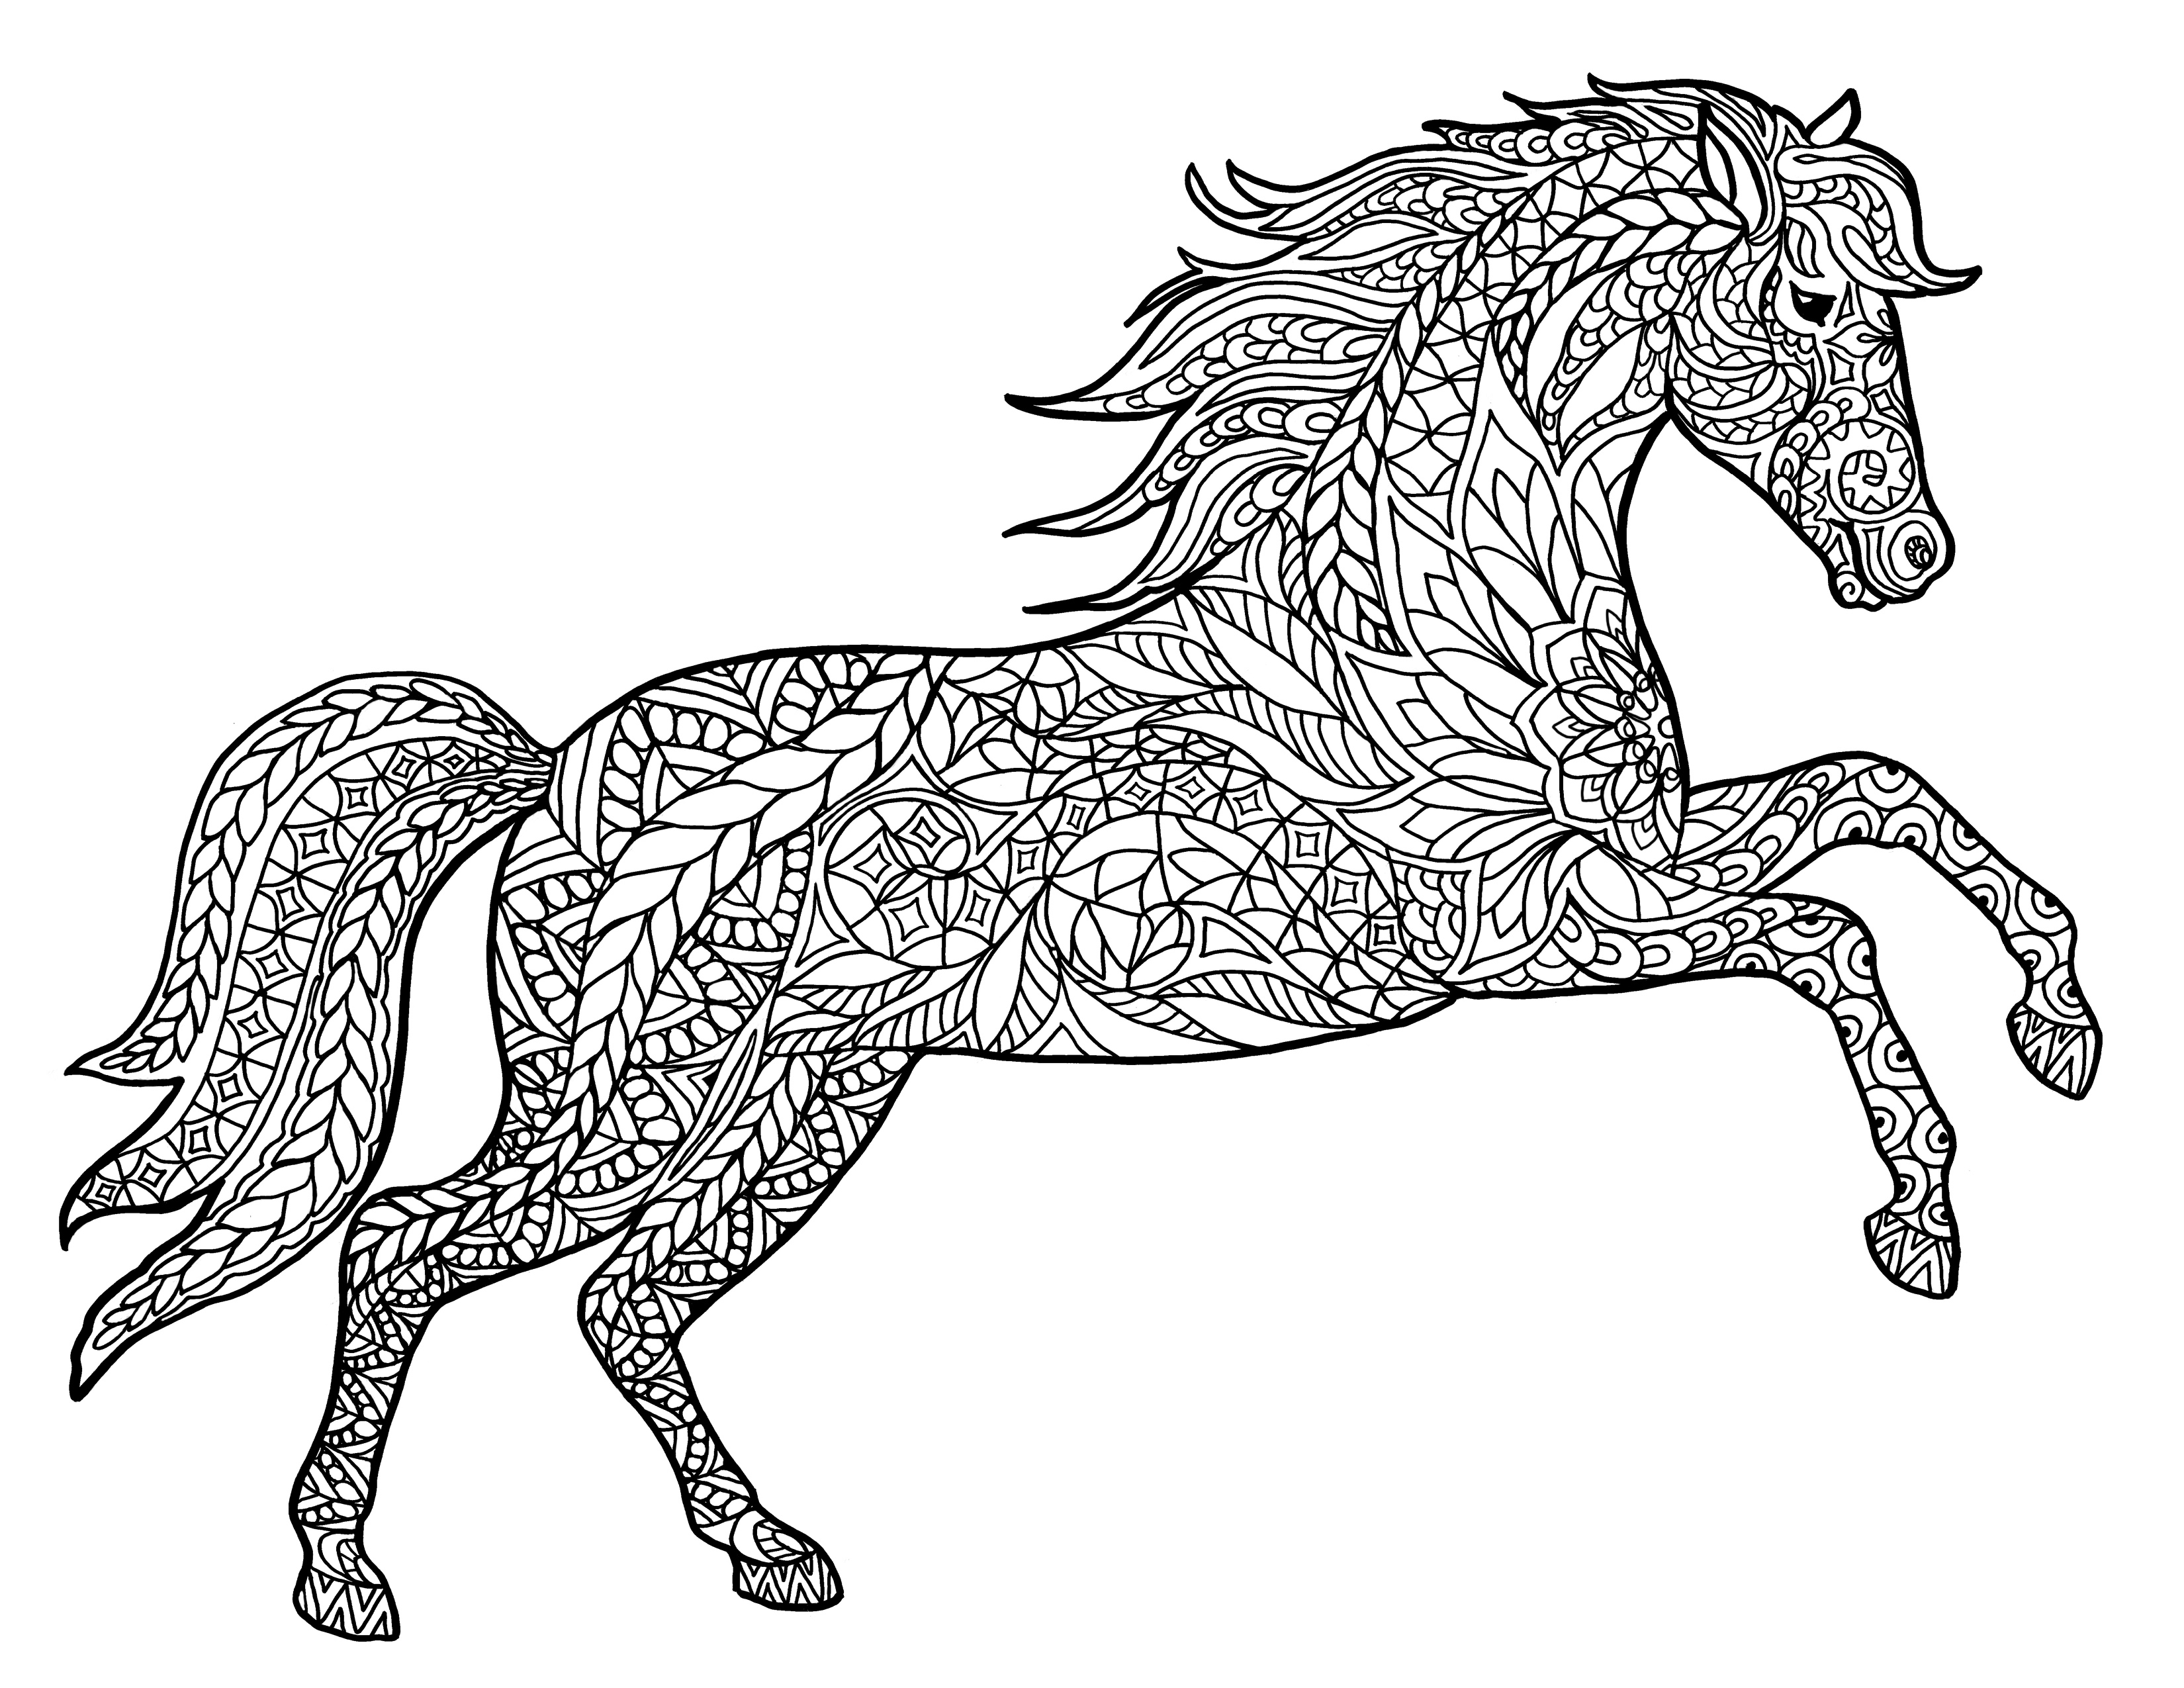 coloring page horse horse coloring pages for kids coloring pages for kids coloring page horse 1 1